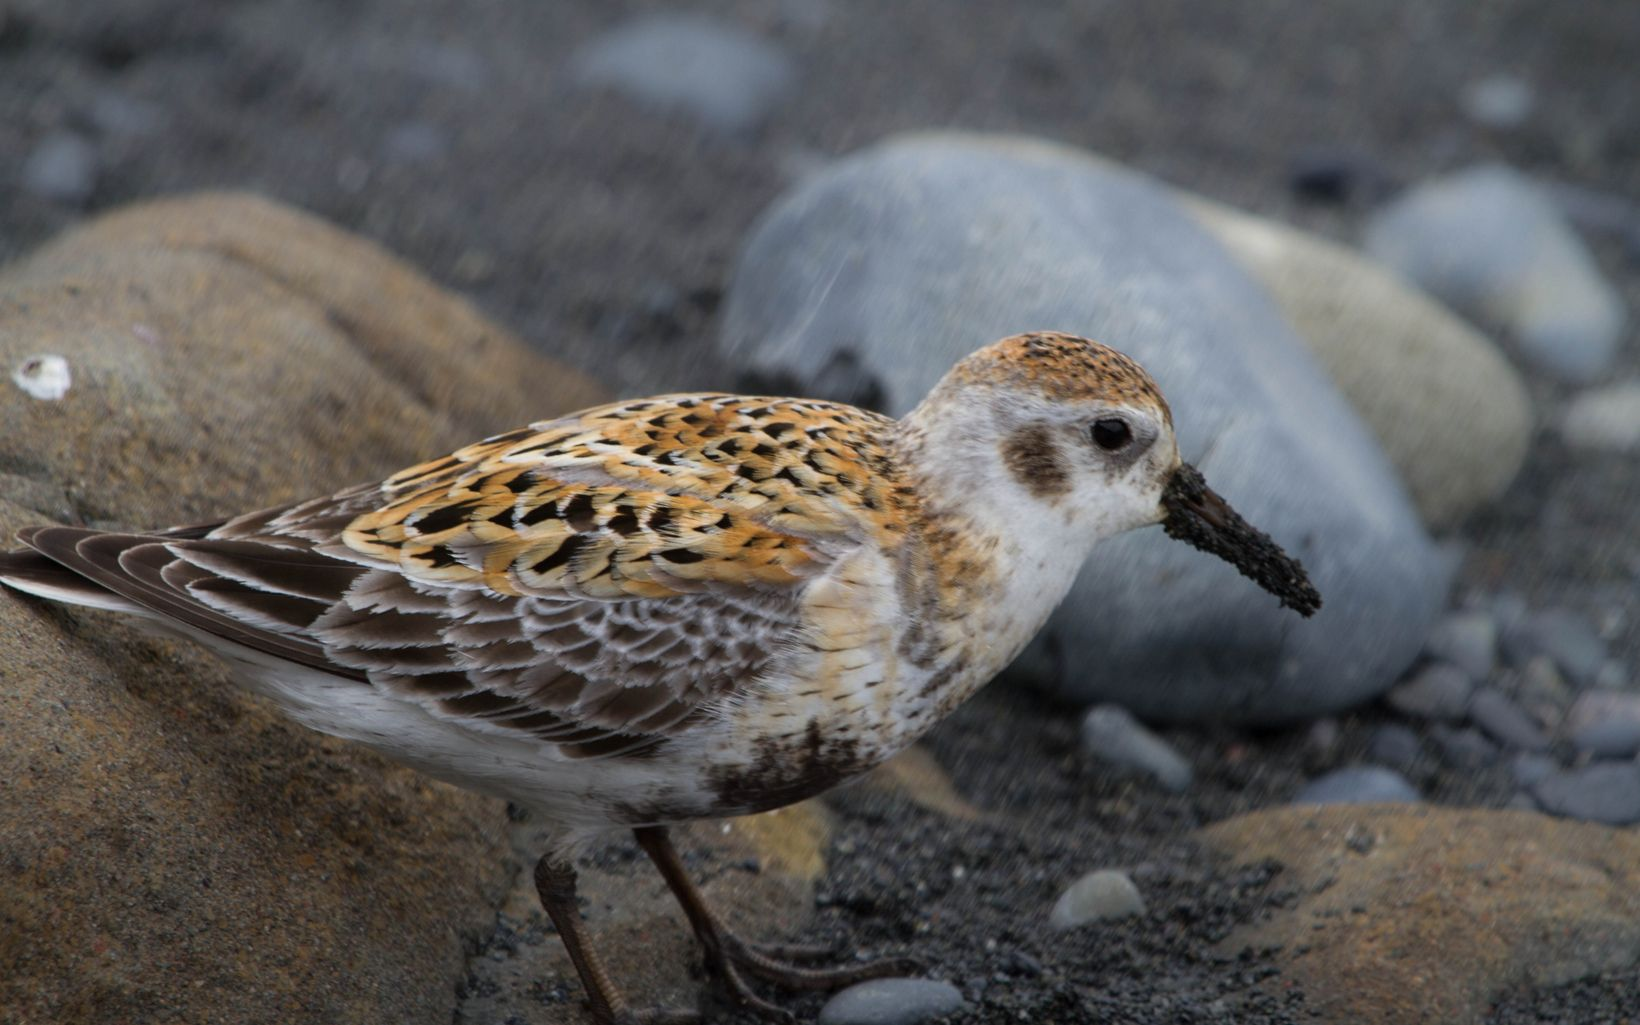 Rock sandpiper on Hawadax Island in Alaska.